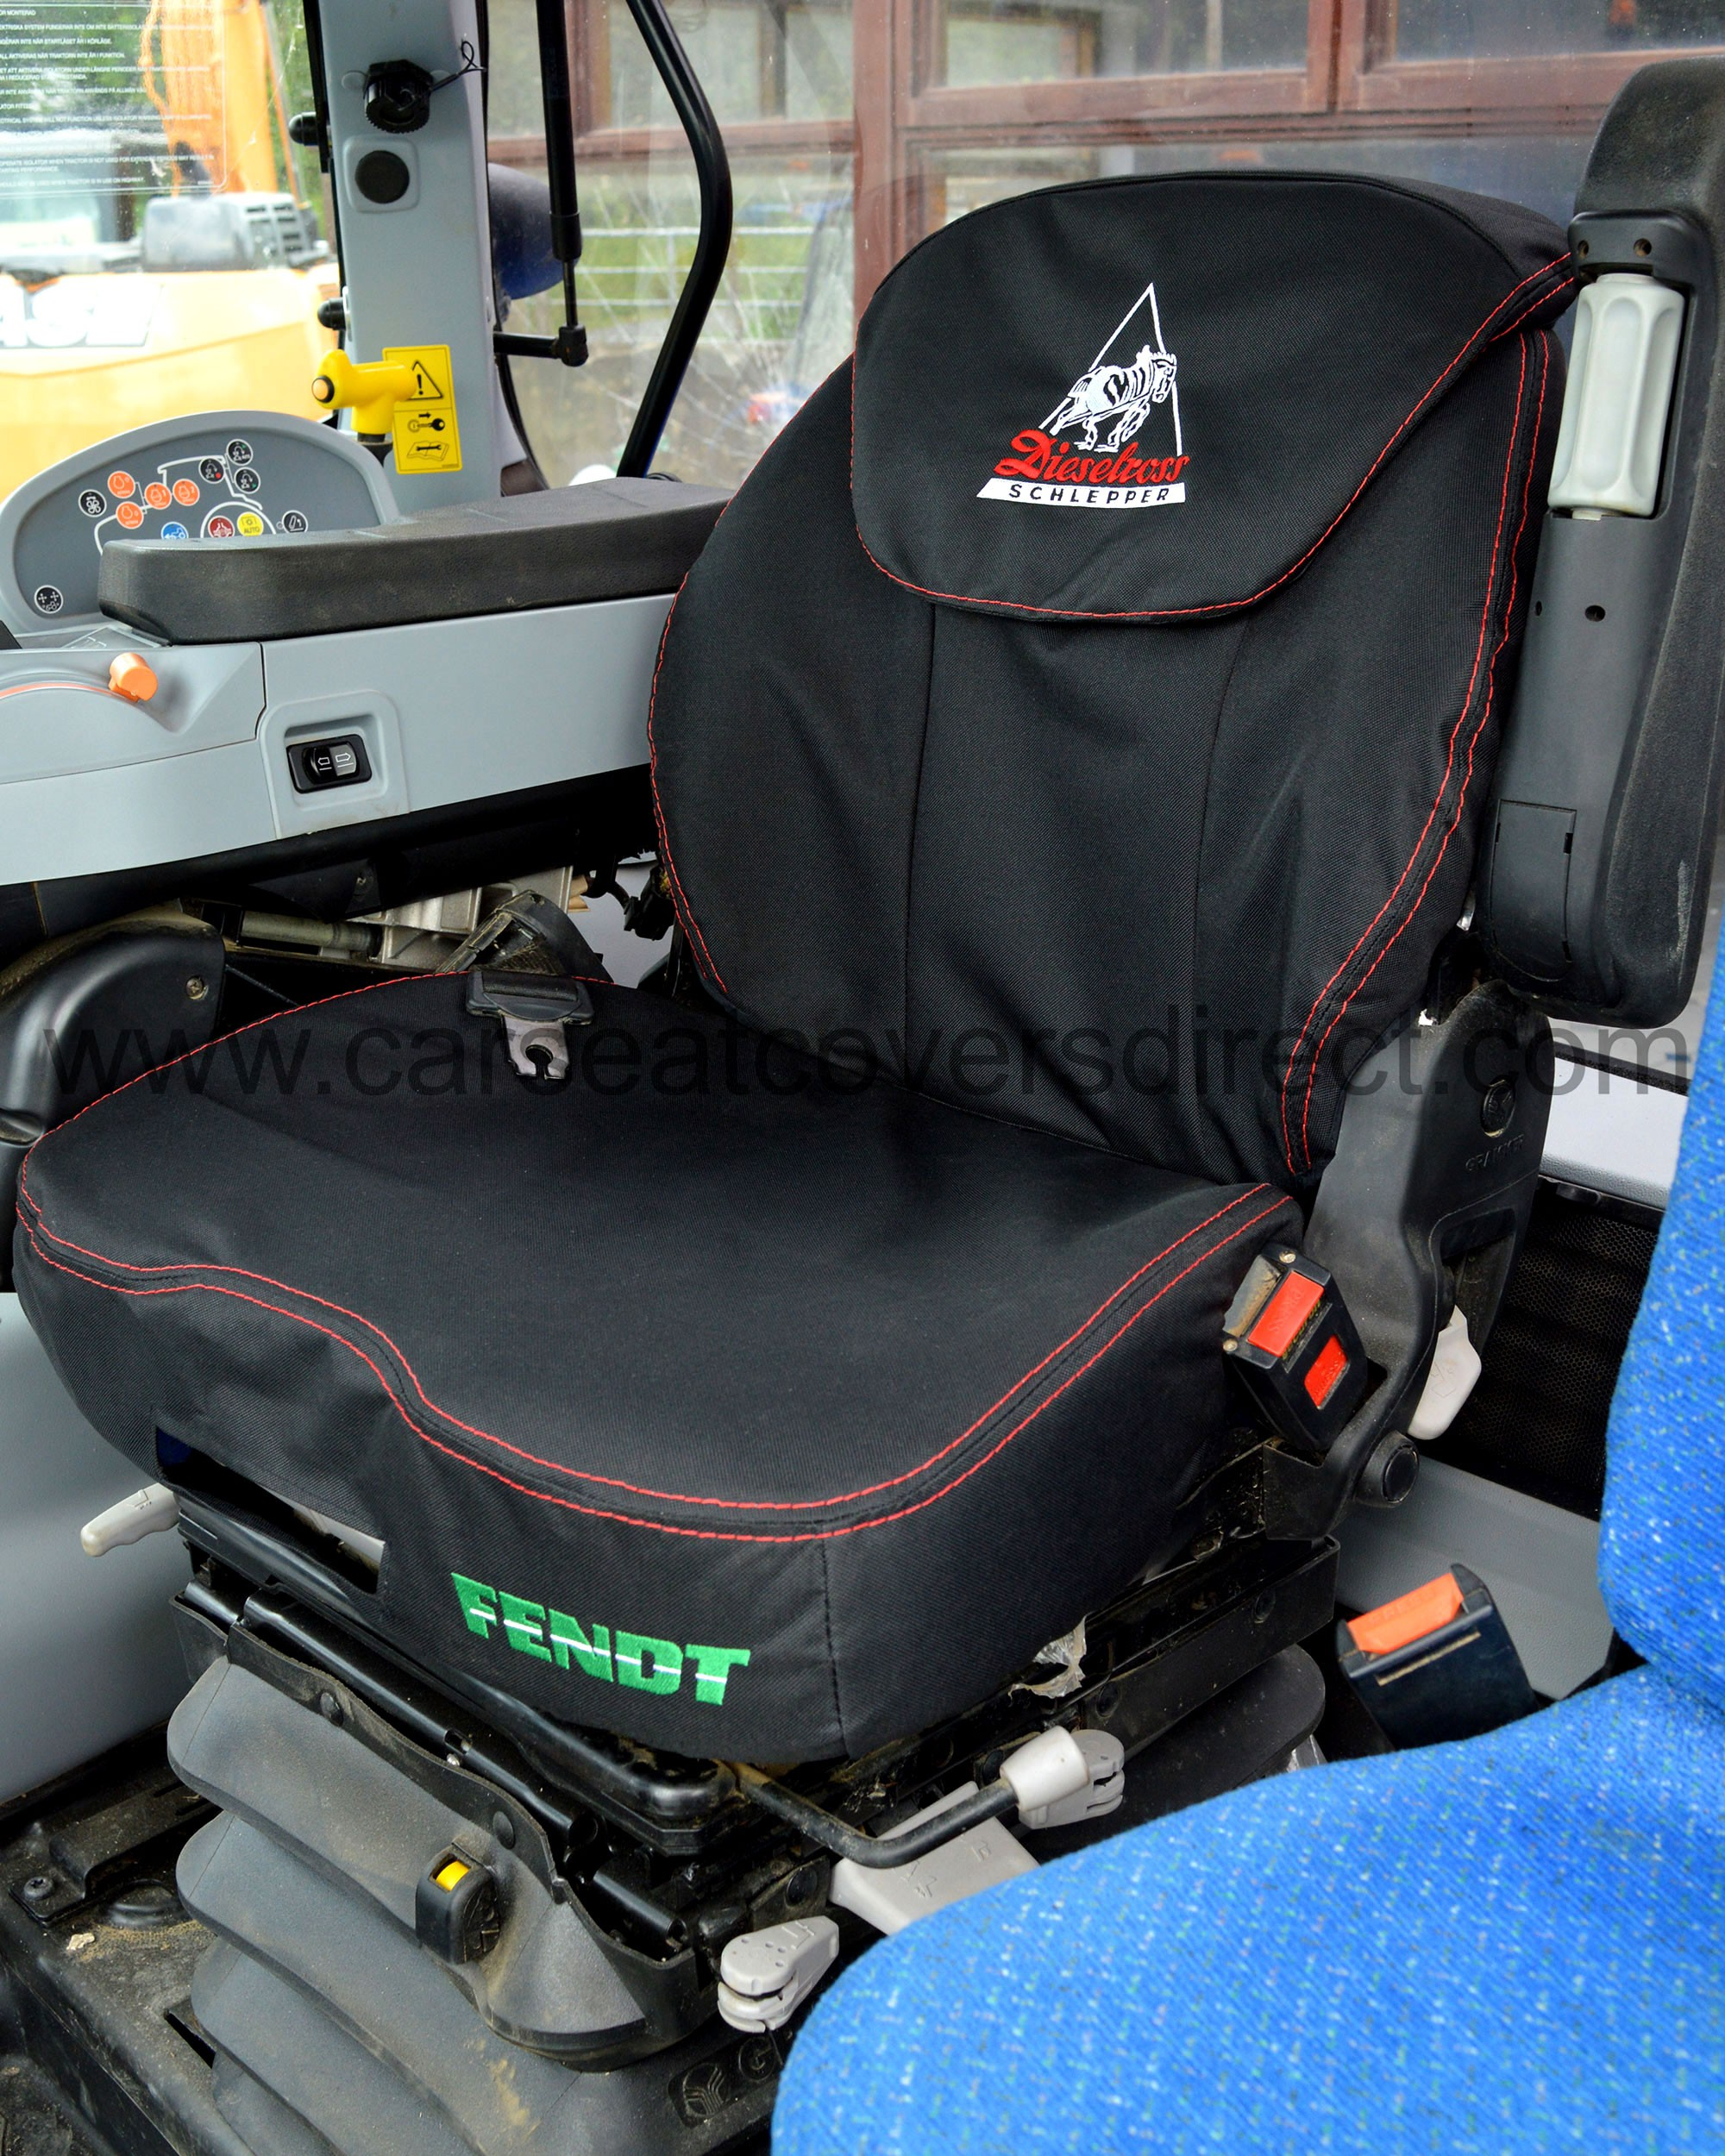 Tractor Seat And Seat Covers : Fendt tractor grammer maximo dynamic seat covers with